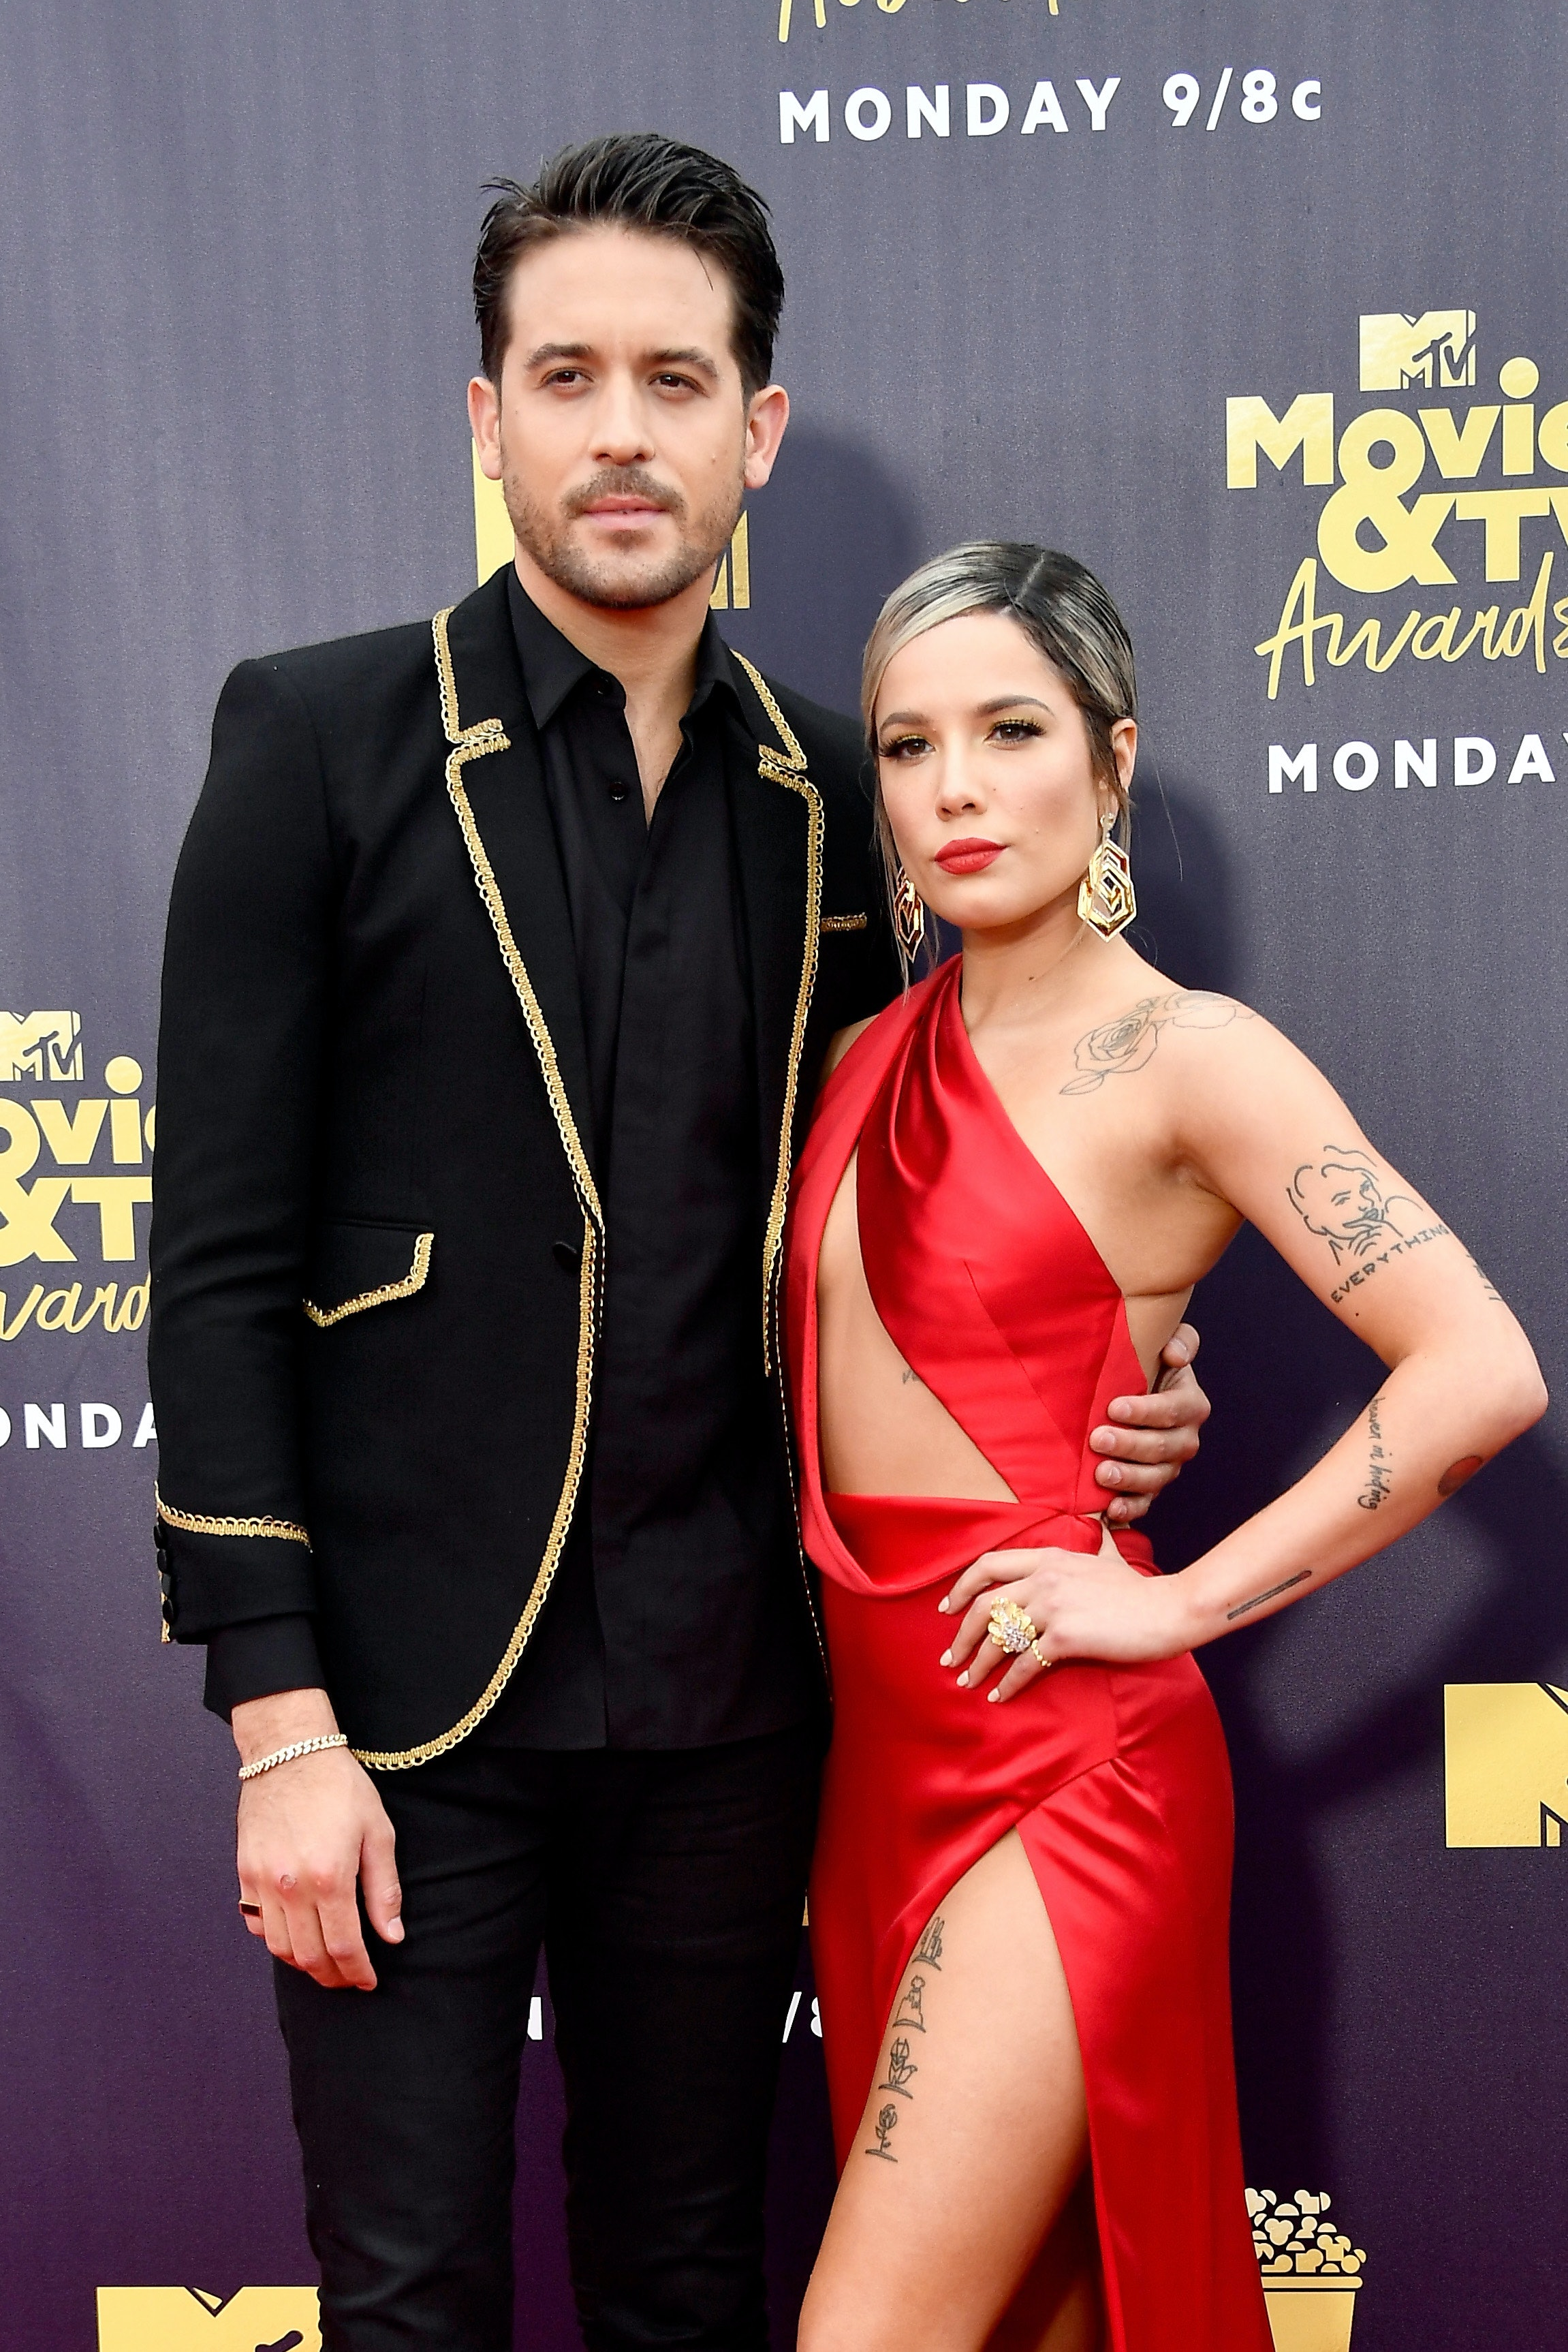 Are Halsey & G-Eazy Still Dating? The On-Again, Off-Again